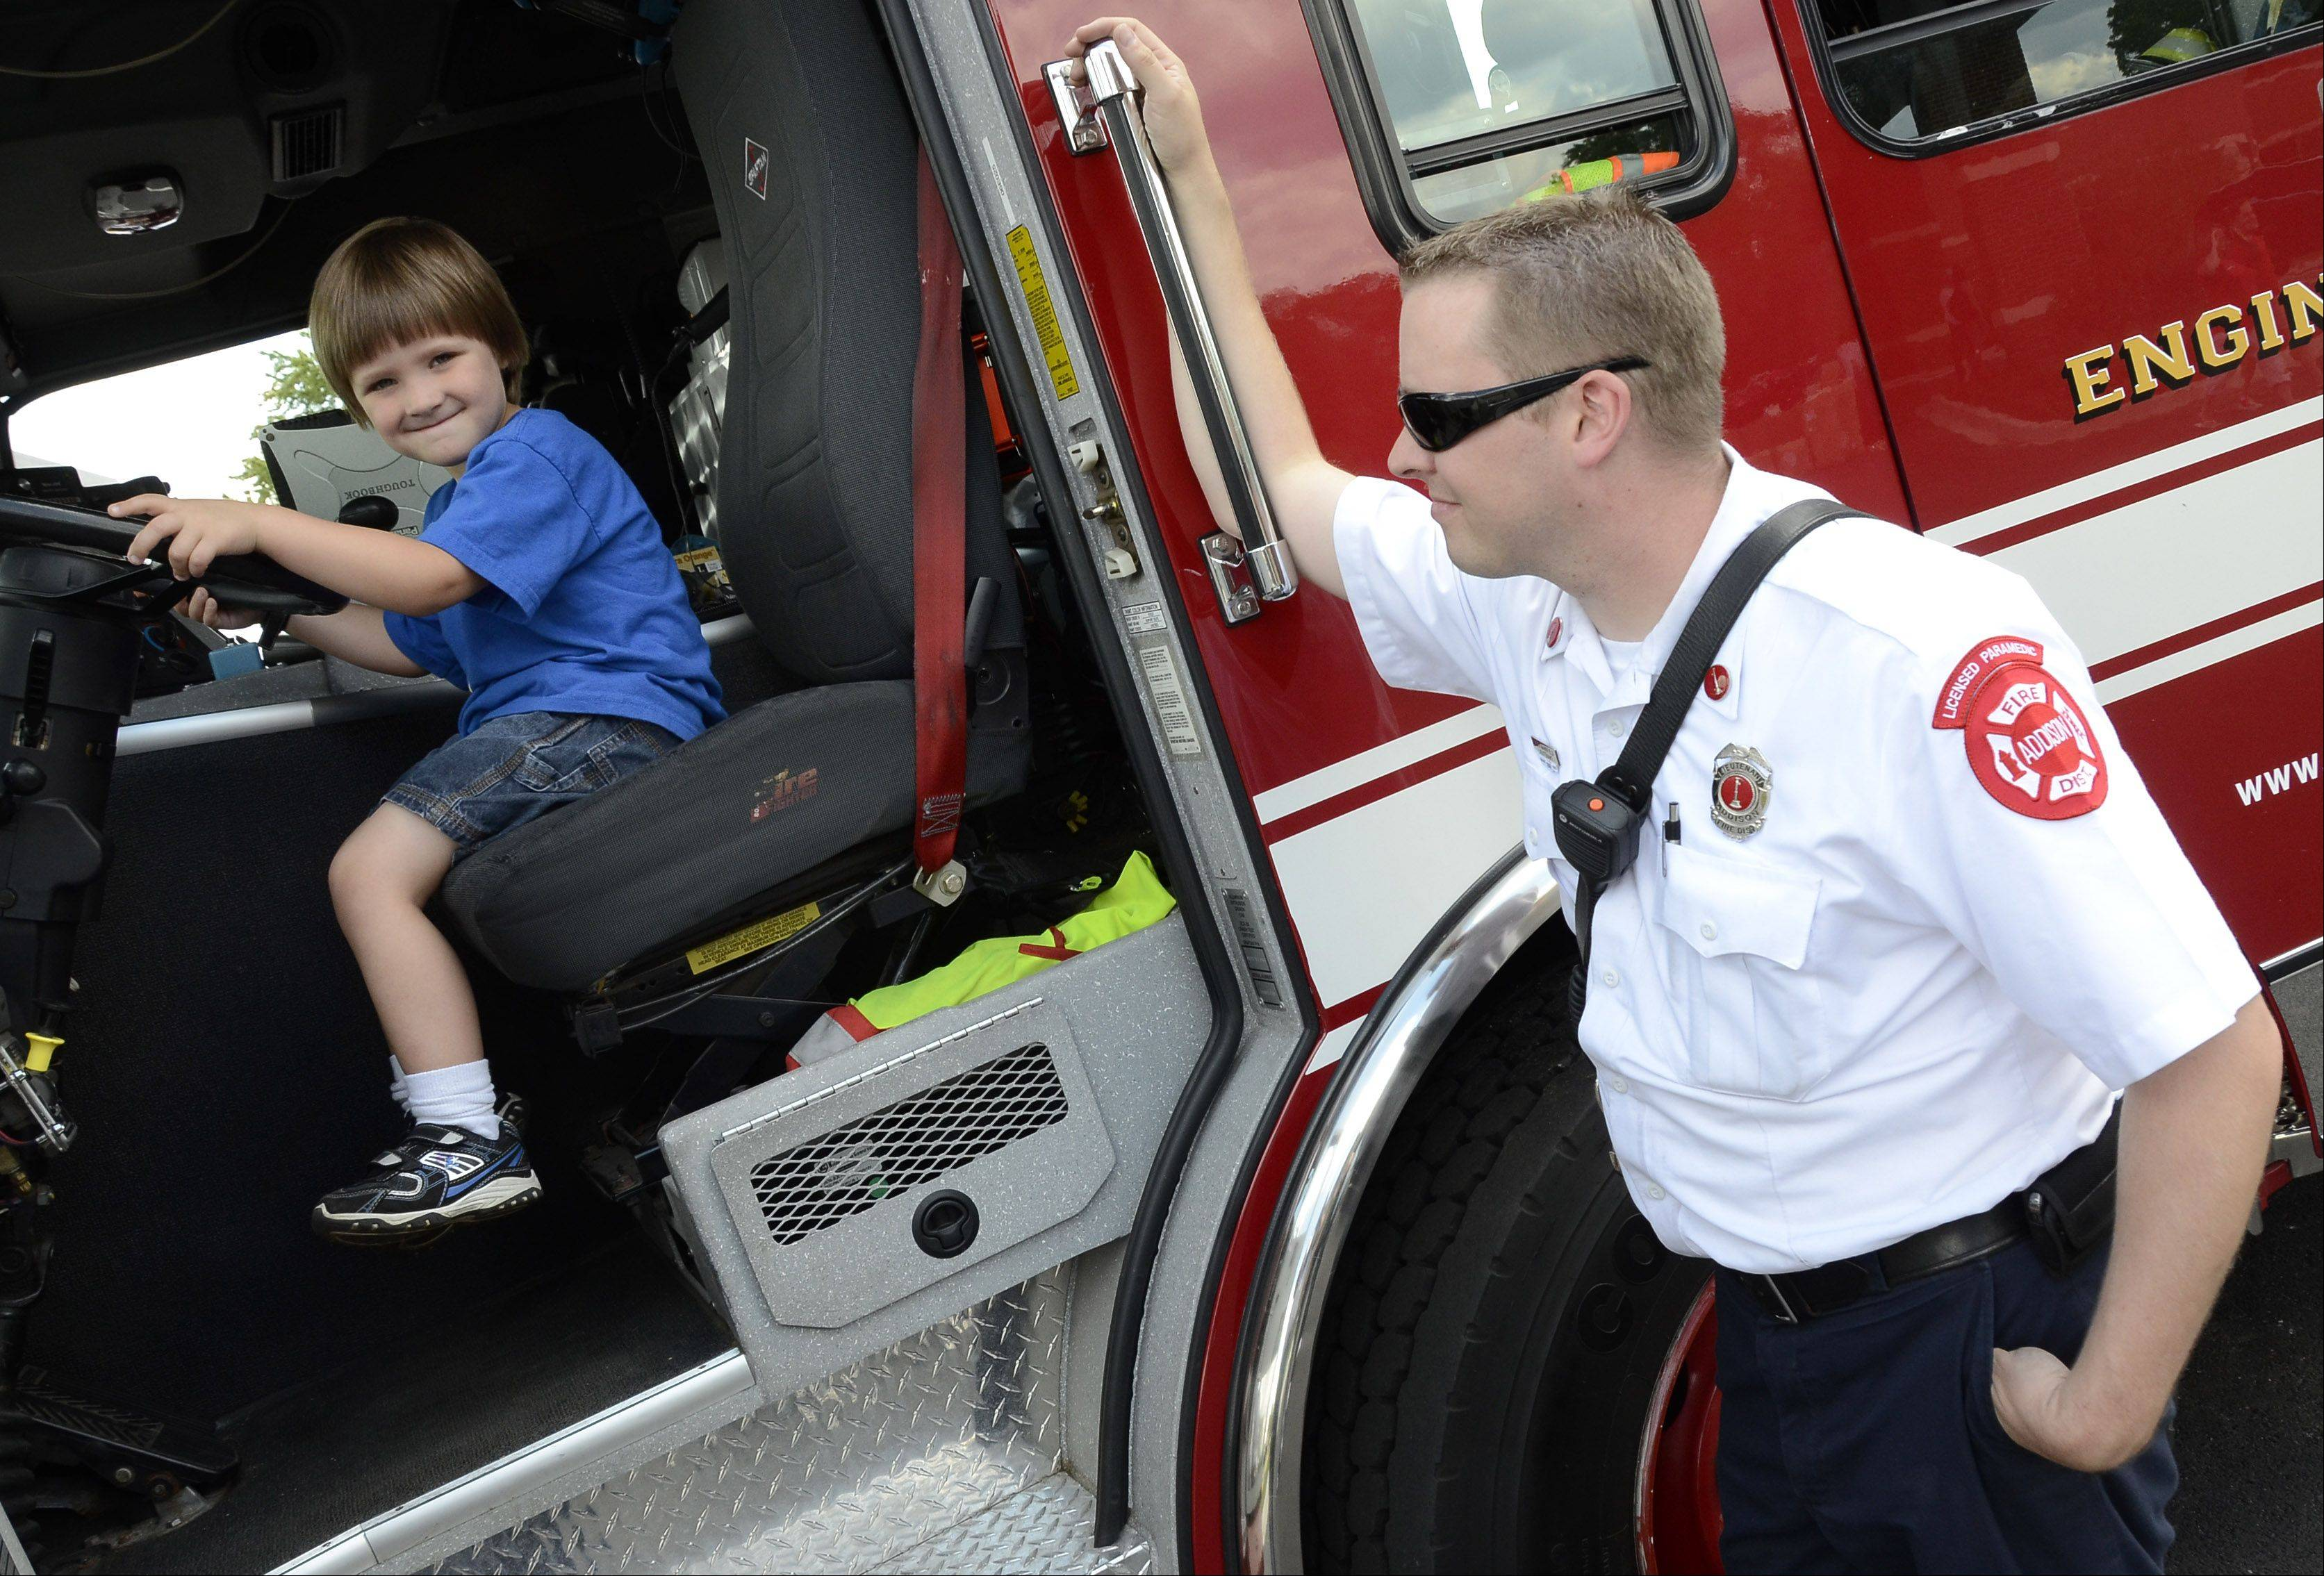 Christopher Kaul, 4, of Elmhurst gets to steer a fire truck Sunday at the opening of the Elmhurst Memorial Hospital Addison Health Center. Looking on is Addison Fire Department Lt. firefighter /paramedic Chris Mansfield.